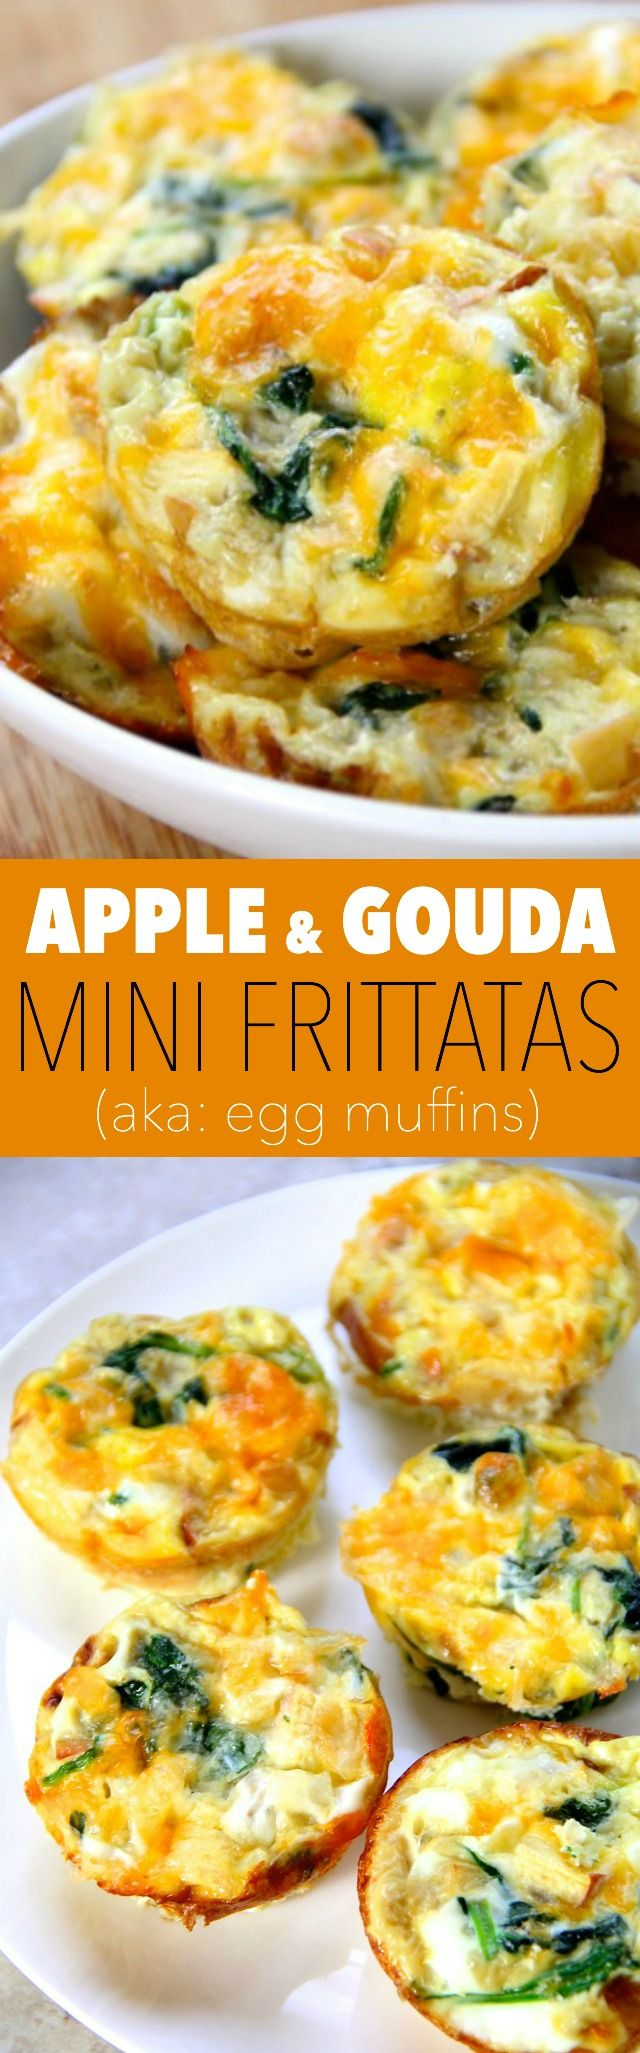 Apple and Gouda Mini Frittatas -- these delicious little egg muffins make a perfect grab-and-go breakfast or a fun brunch! Make ahead and simply pop them in the microwave when you're ready to eat || runningwithspoons.com #breakfast #brunch #eggs